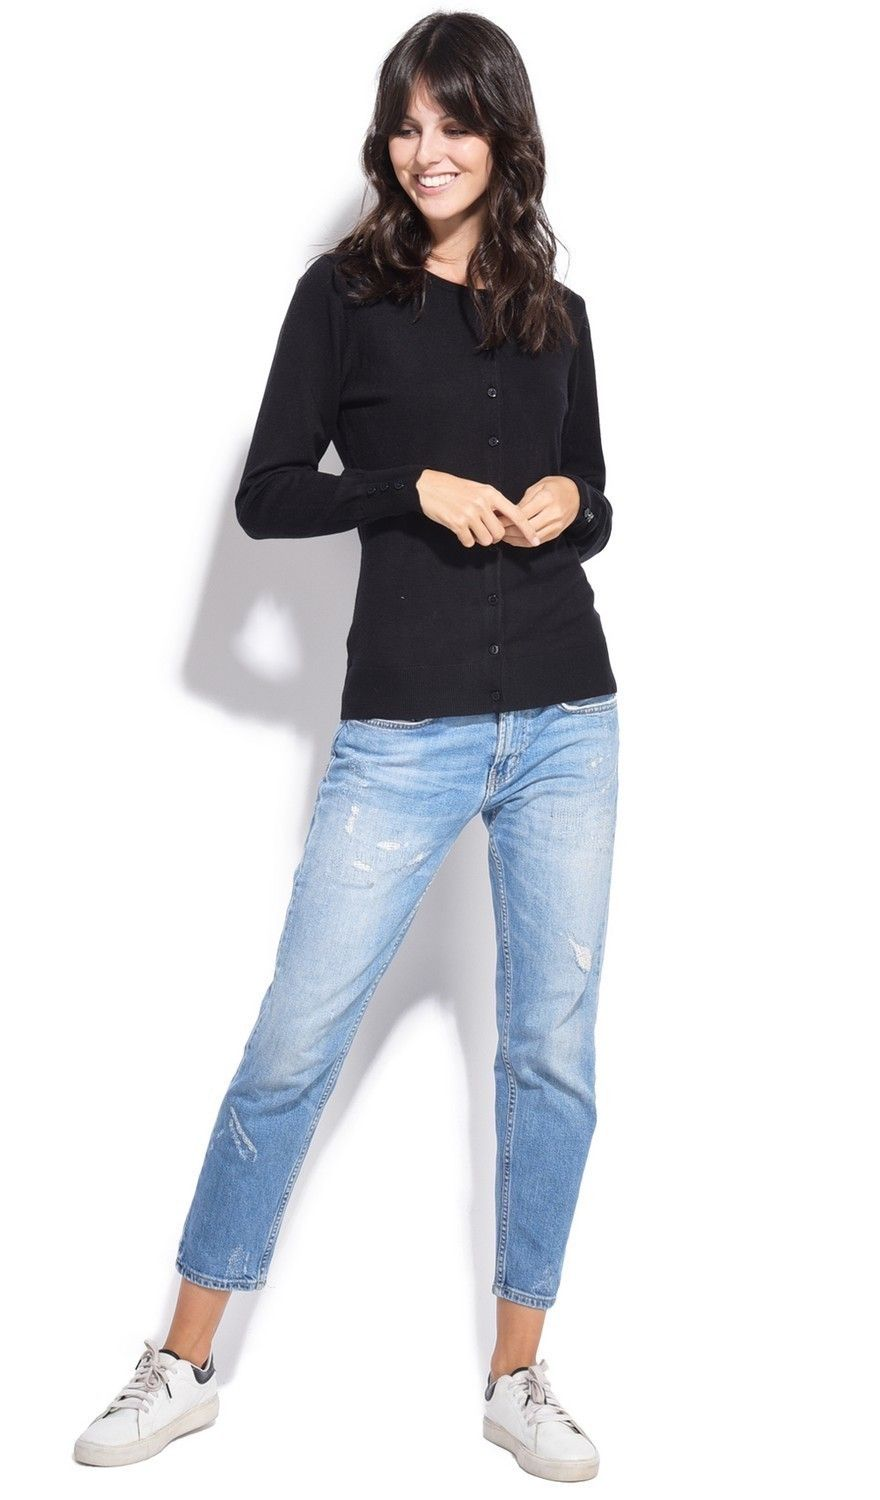 C&JO Round Neck Cardigan with Buttoned Sleeves in Black